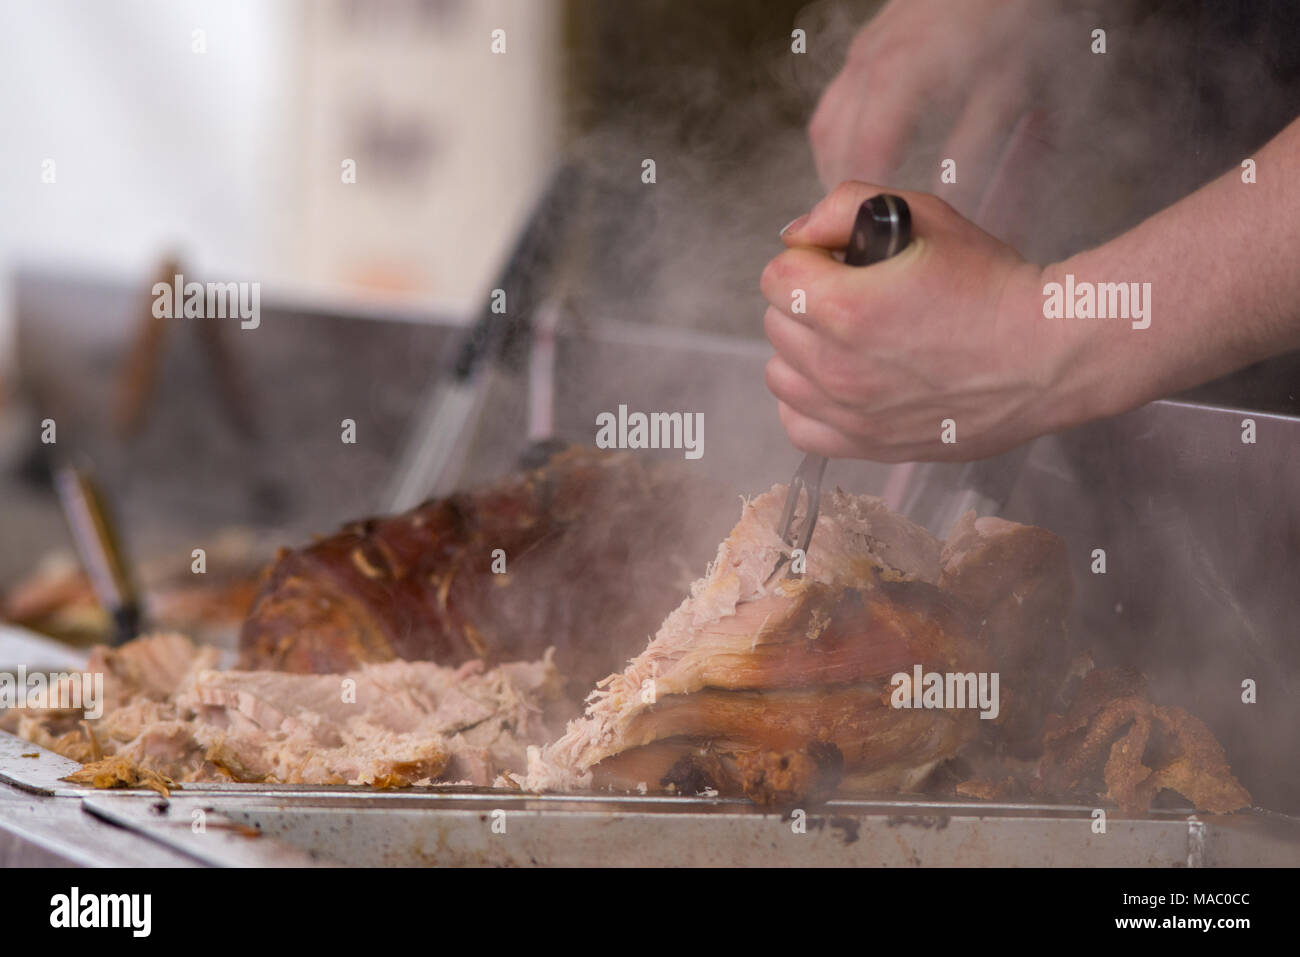 man carving pork joint with fork and knife at hog roast - Stock Image